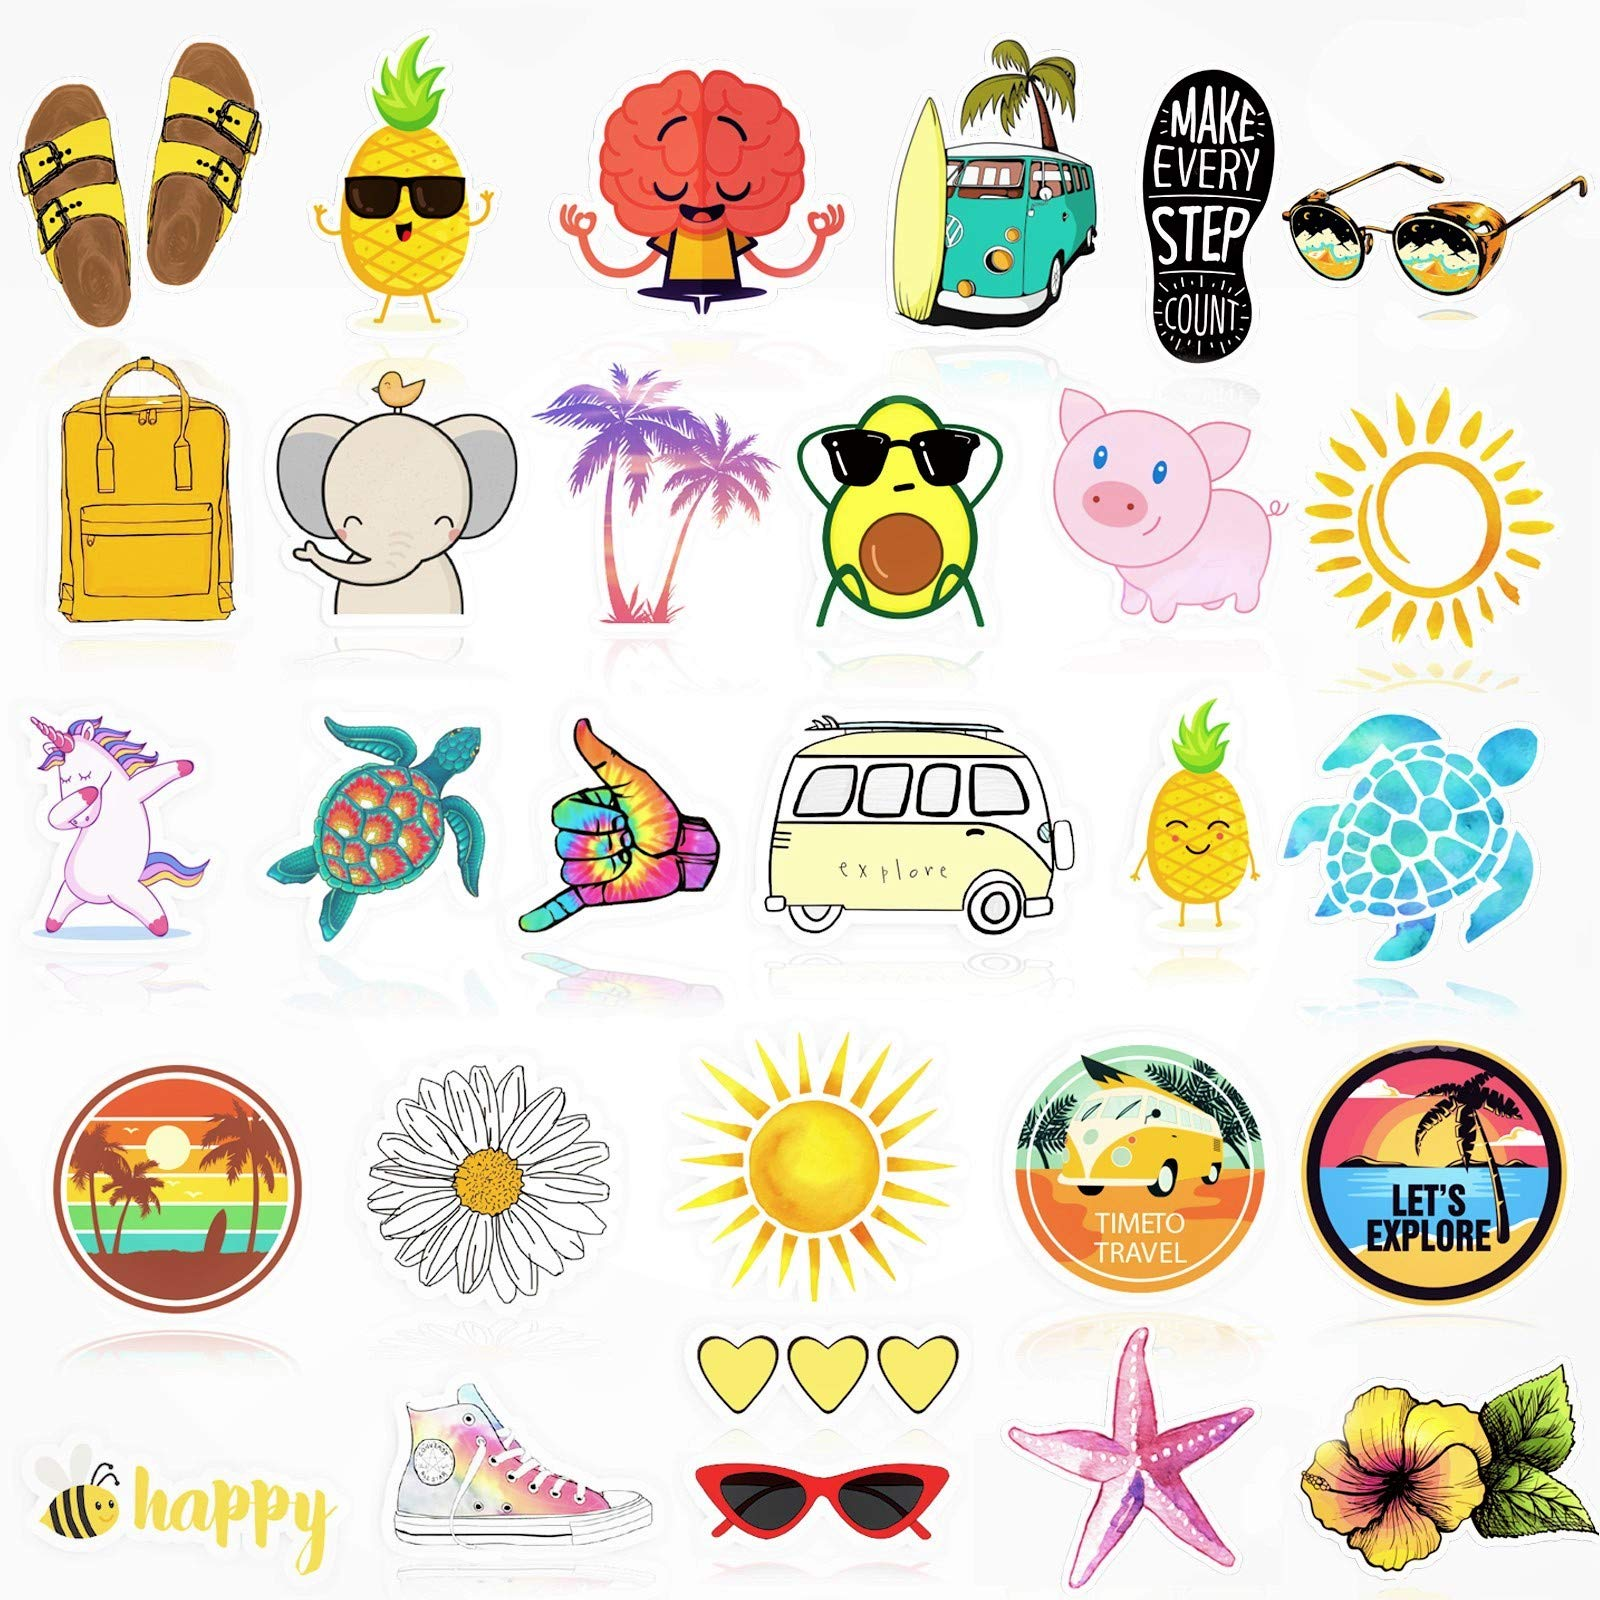 VSCO Water Bottle Stickers, Cute Waterproof Vinyl Stickers for Teens and Girls.Unique Cool Durable Decal Stickers, Aesthetic and Trendy 30 Pack Stickers for Water Bottles, Laptop, Phone.